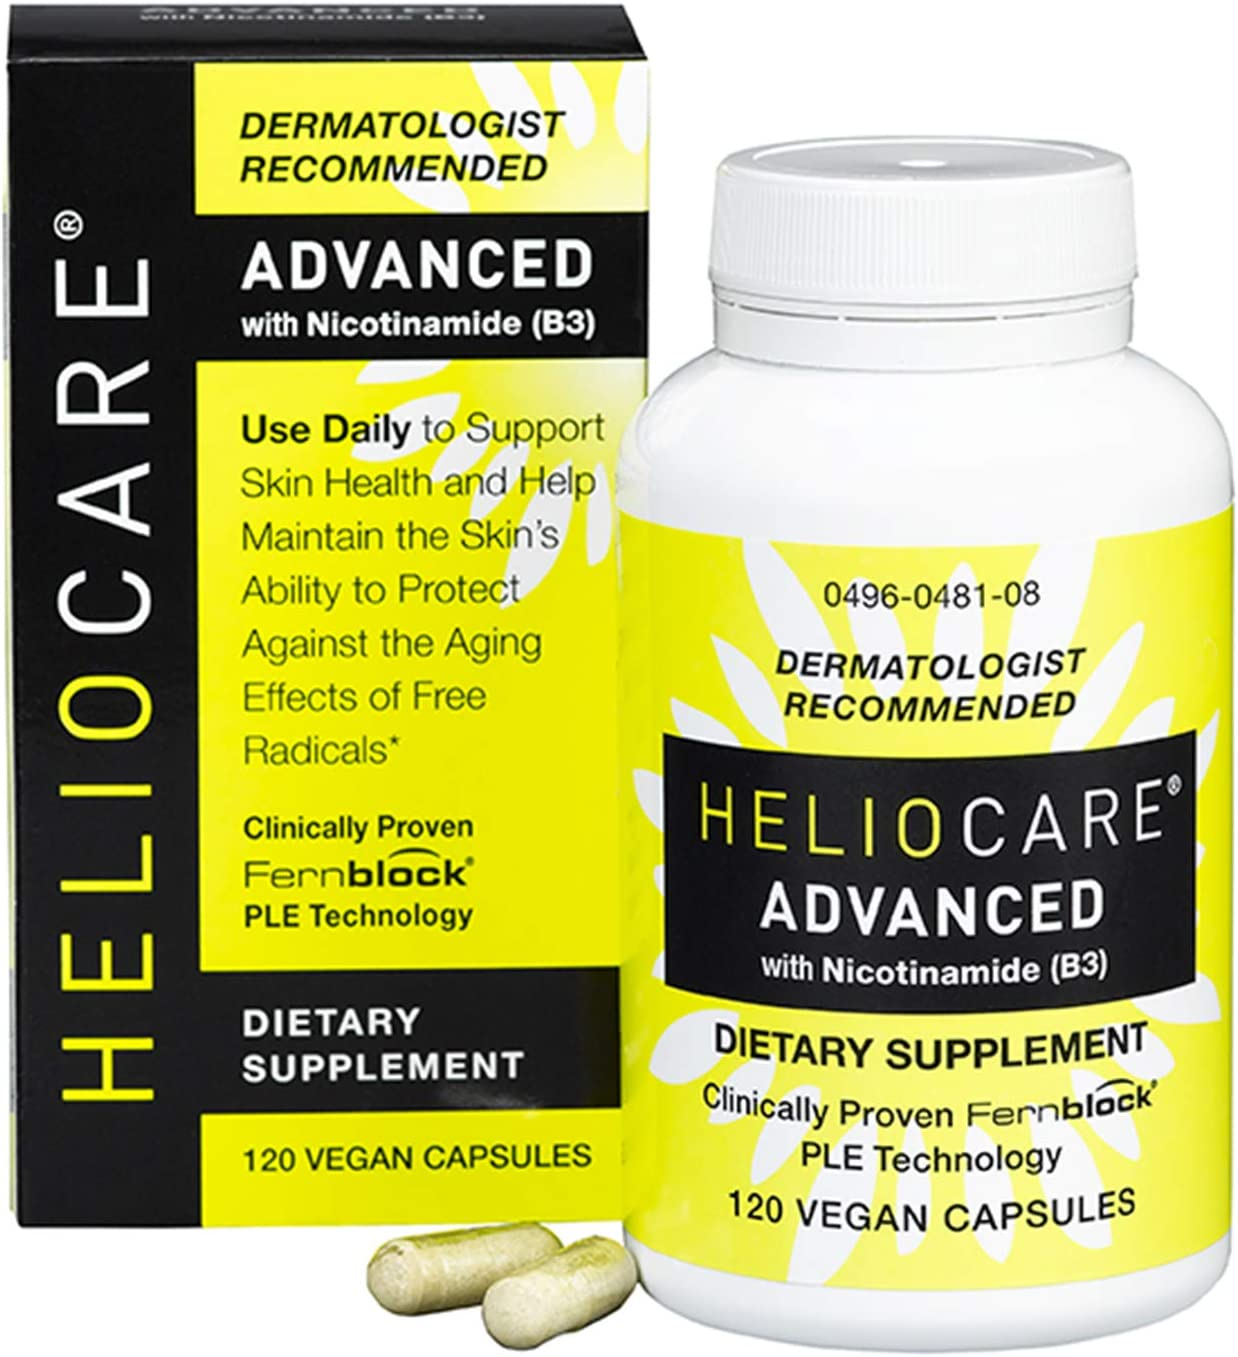 Heliocare Advanced Nicotinamide B3 Supplement Niacinamide 250mg and Fernblock PLE Extract 120mg Per Capsule – Helps Support Skin Cell Health W Antioxidant Rich Vitamin B3 Niacin – 120 Vegan Capsules